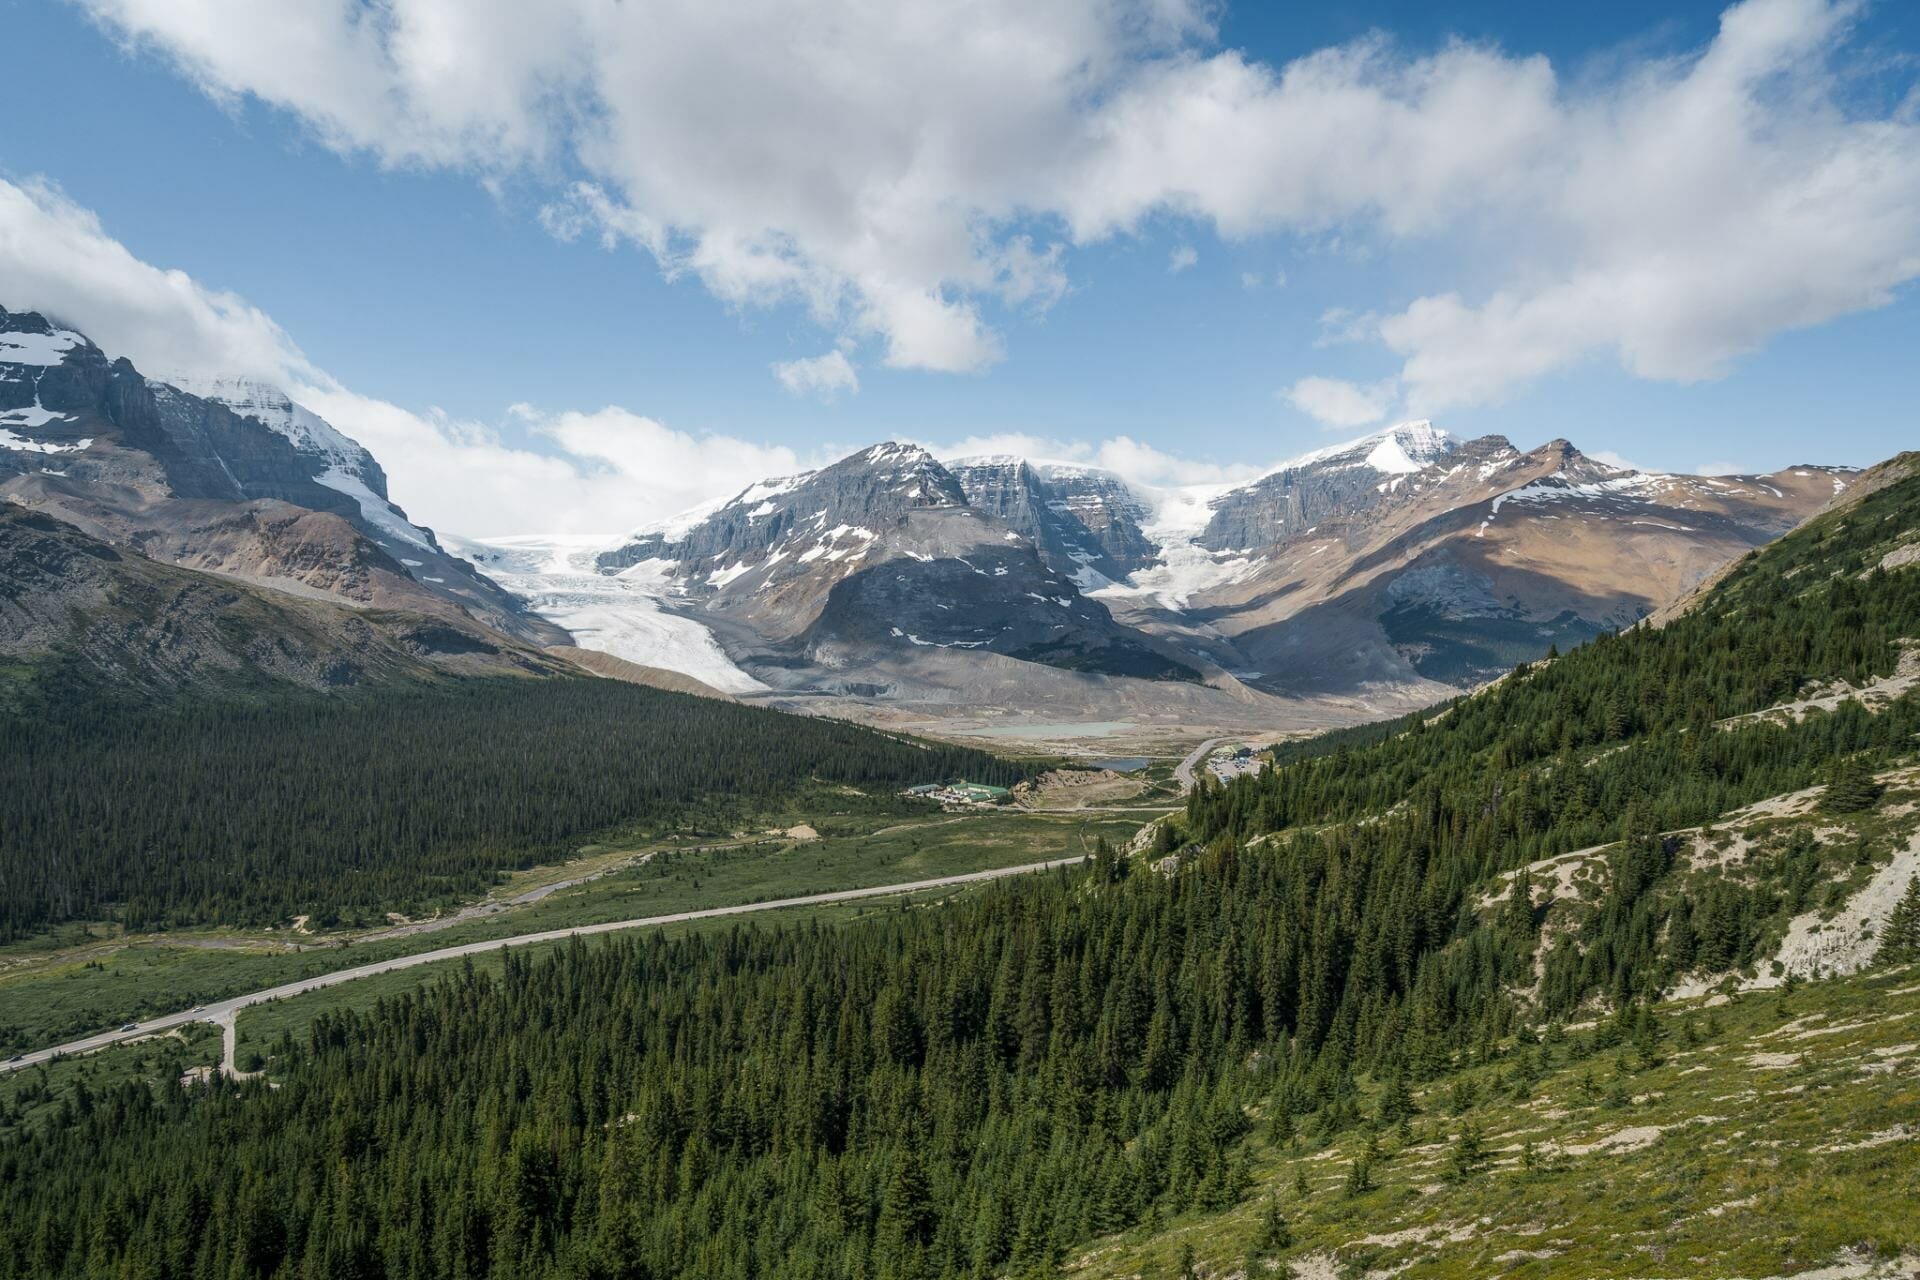 Hiking in Icefields Parkway